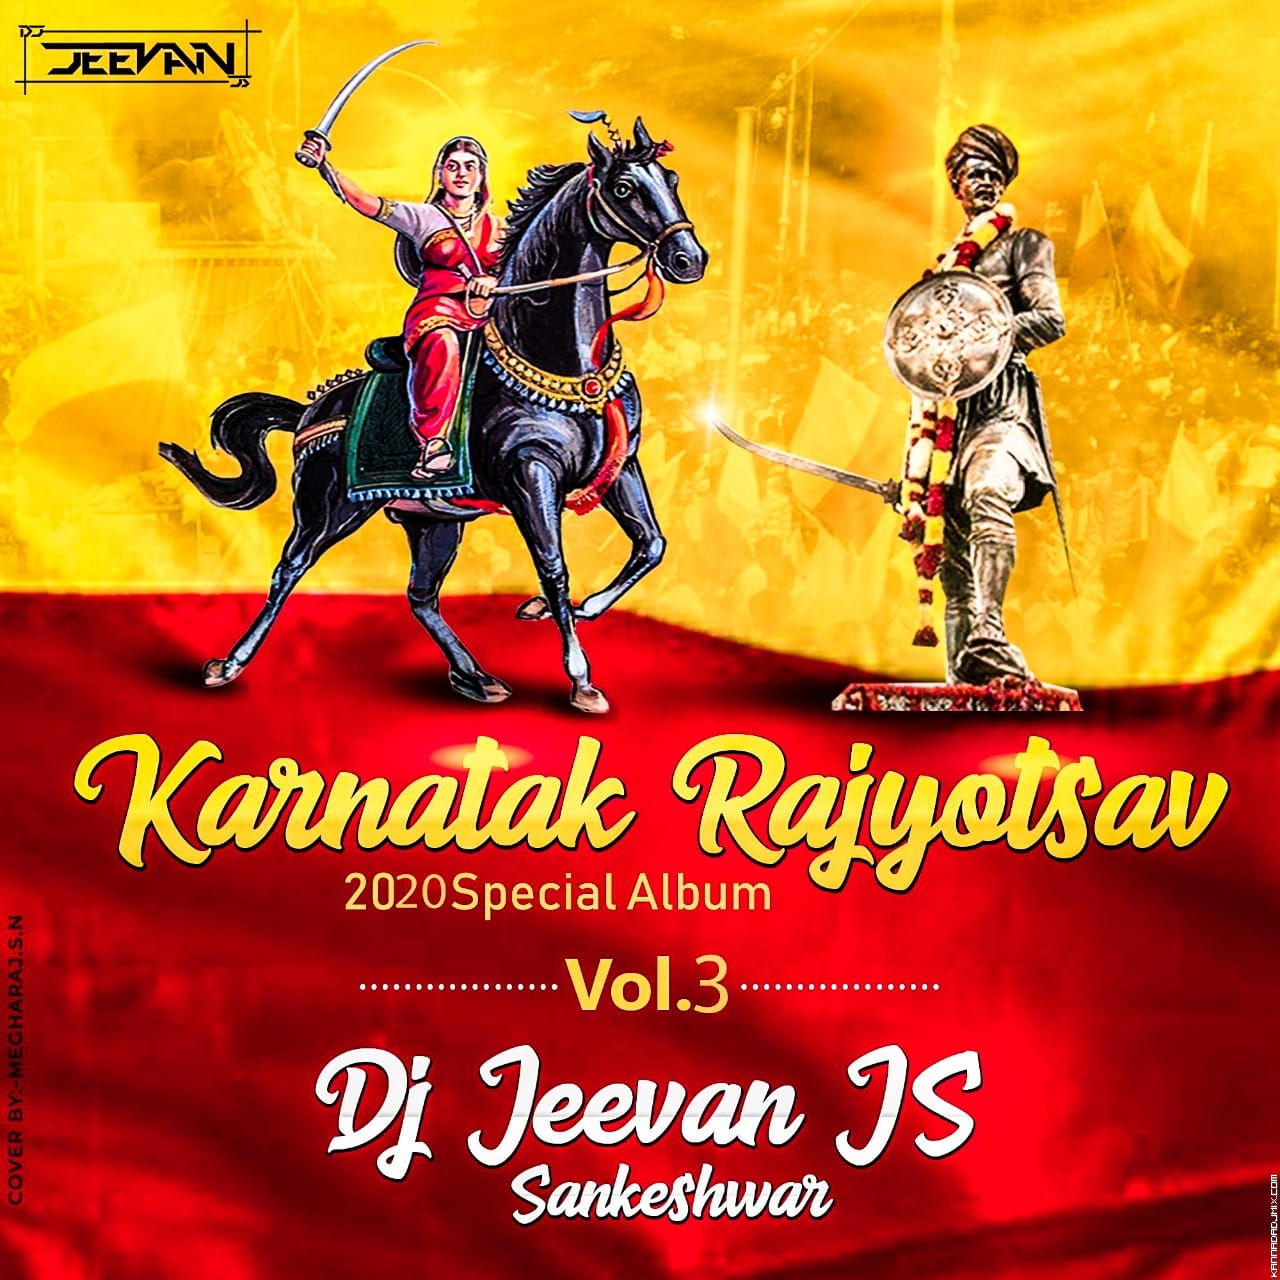 Nam Belgavi In EDM Drop2020 Mix By Dj Jeevan JS Sankeshwar.mp3